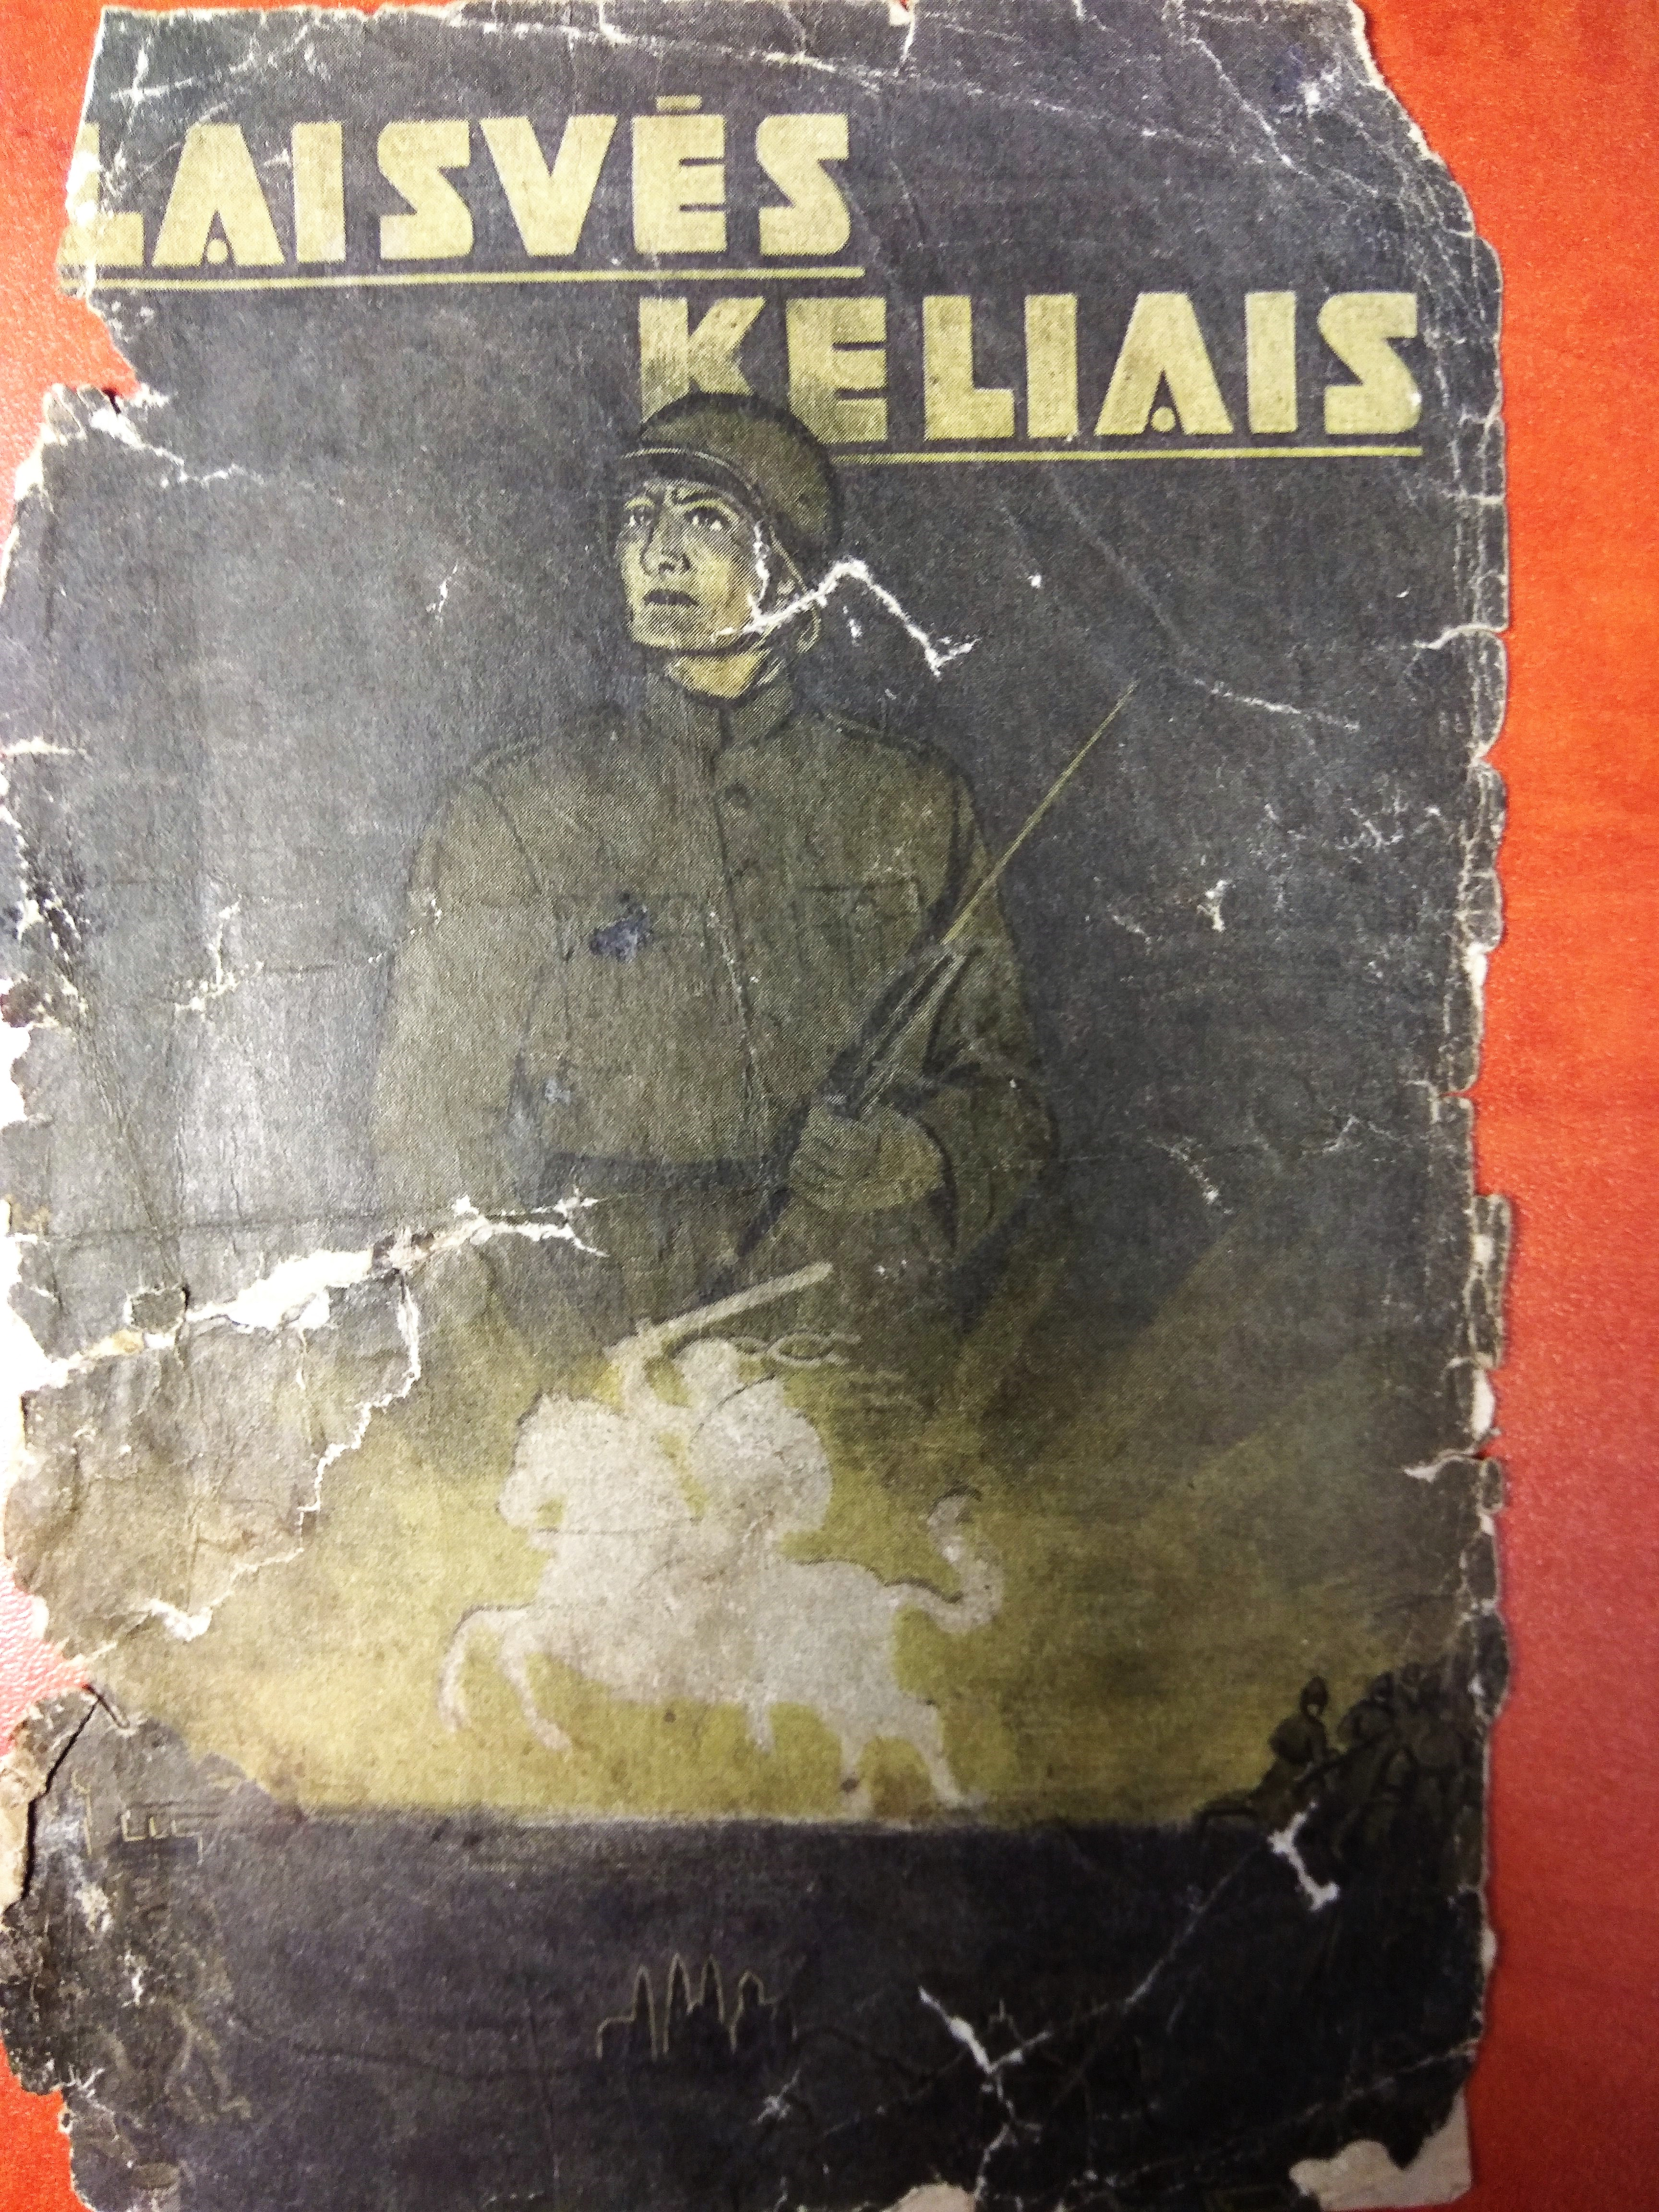 The cover of newspaper 'Laisvės kelias' (Way of Freedom)  made by Lithuanian Anti-soviet partisans.